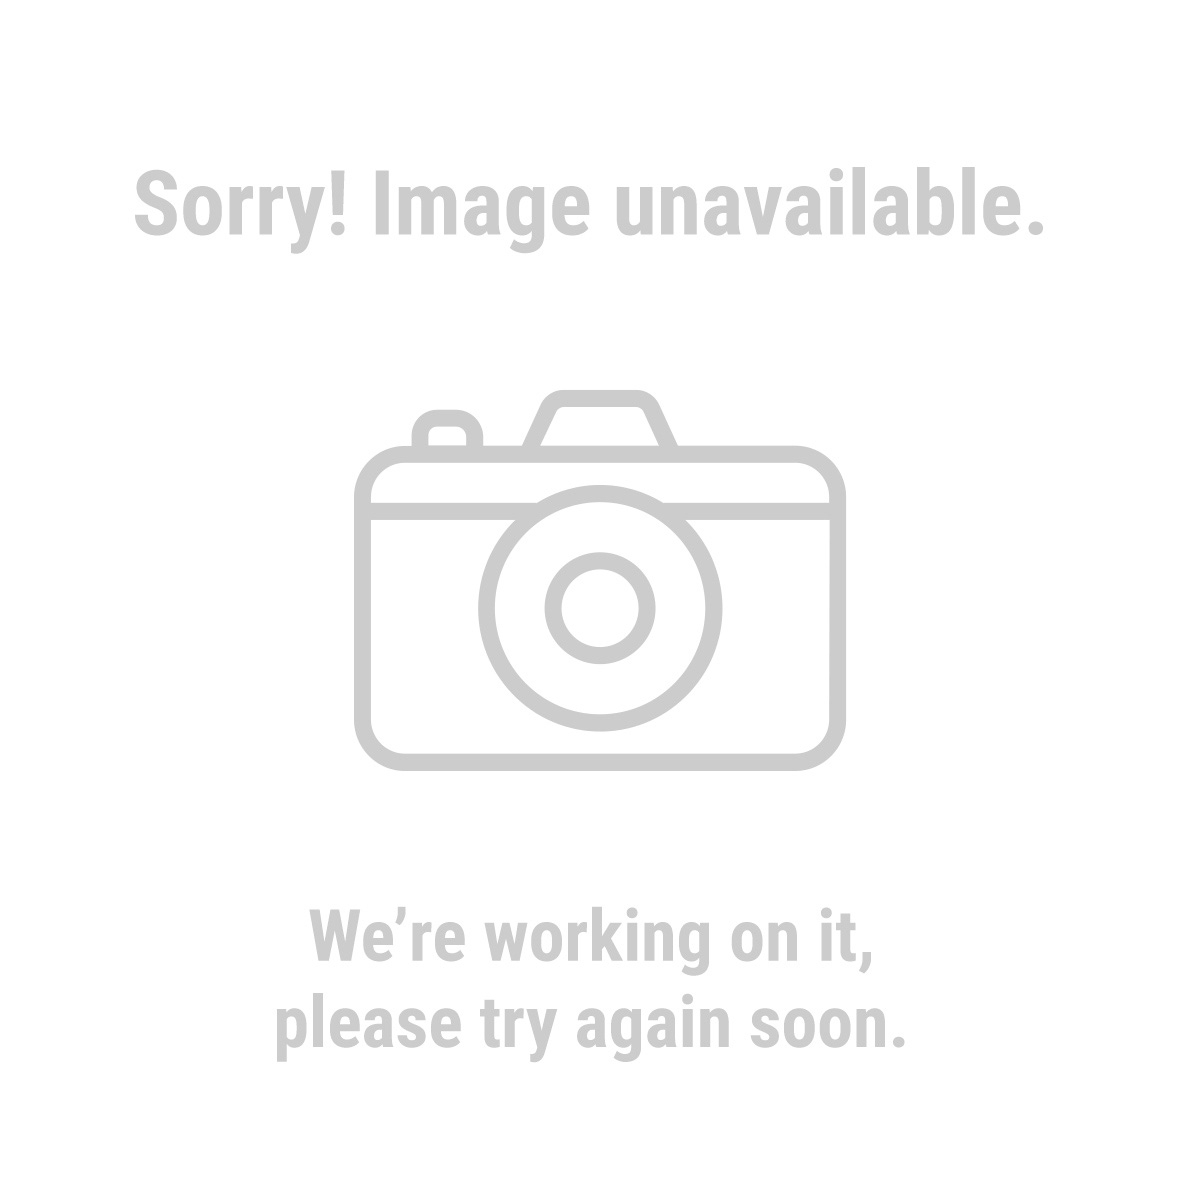 Warrior 69628 Grit Flap Disc